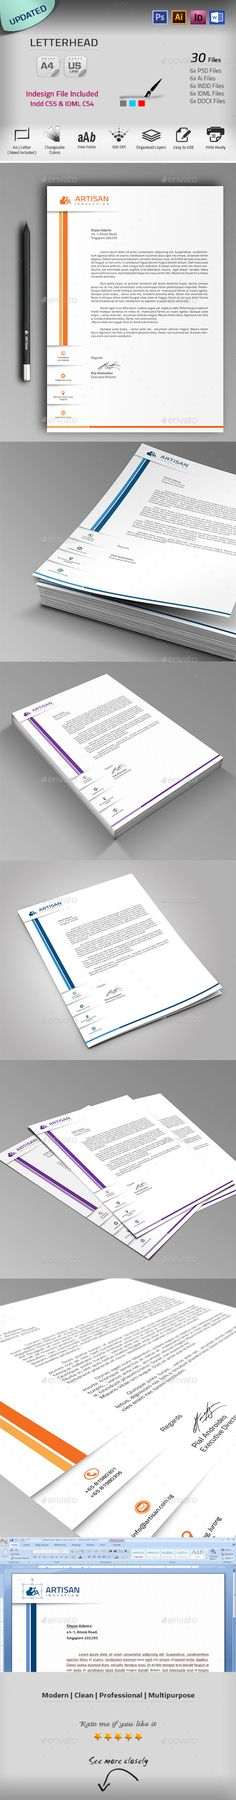 Letterhead Pinterest Stationery printing, Print templates and